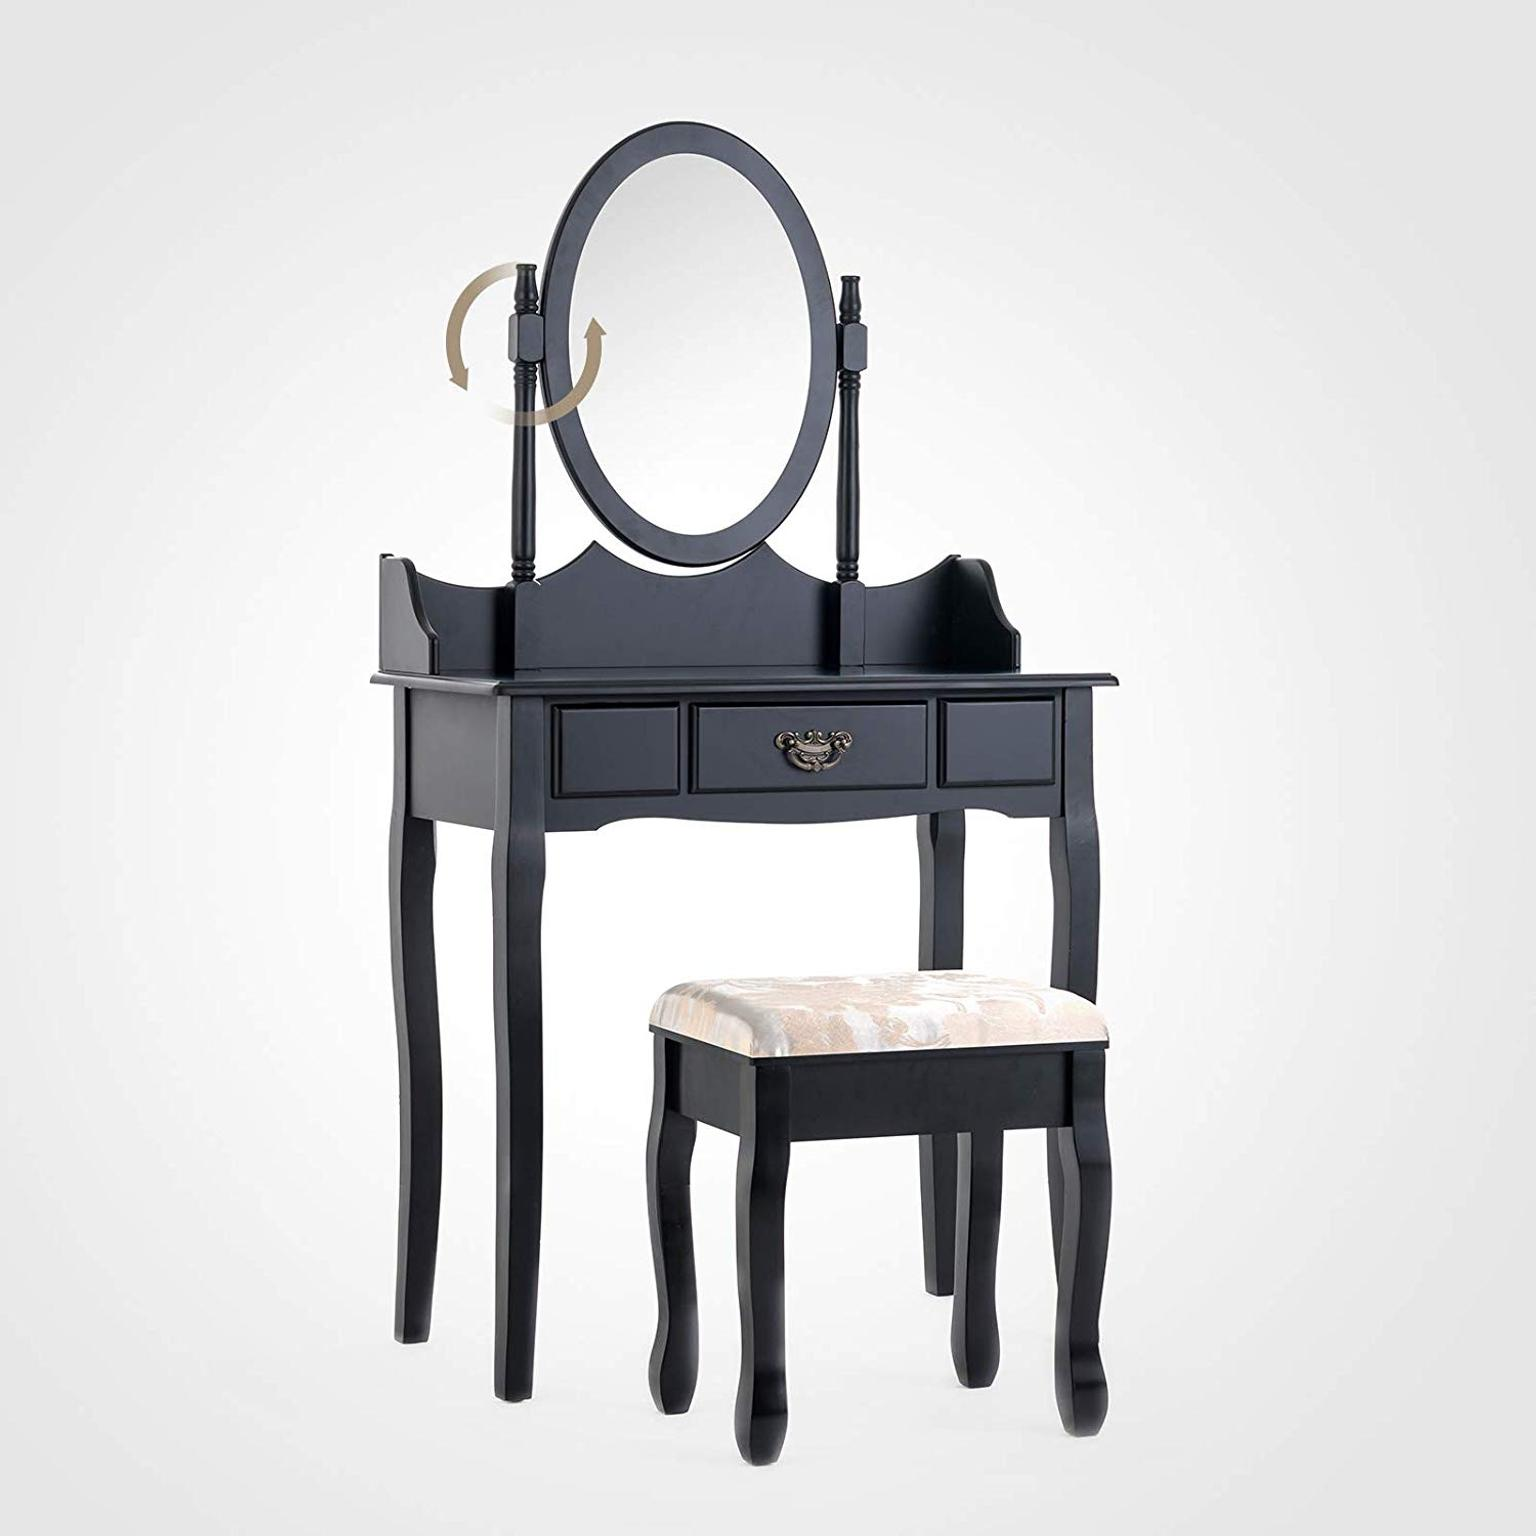 Mecor Black Dressing Table Set With Mirror And Stool Shabby Chic Vintage Style Vanity Makeup And Dressing Table Desk Furniture Bedroom Furniture